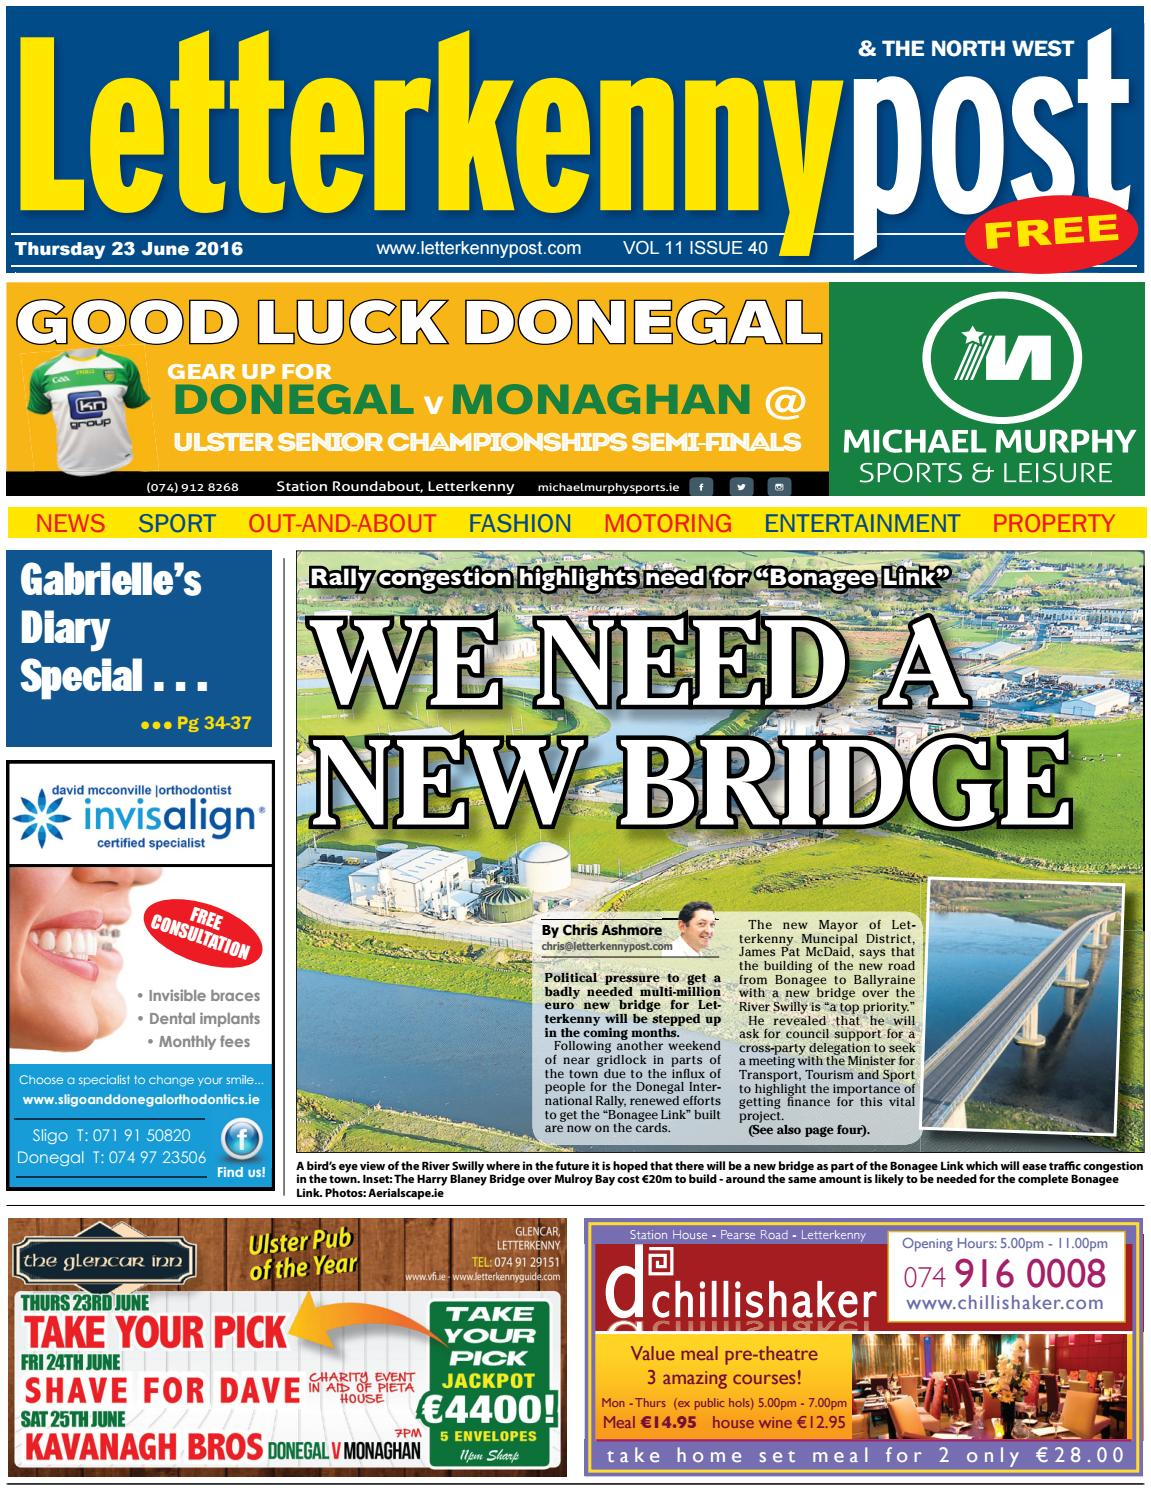 Letterkenny Post 23 06 16 By River Media Newspapers Issuu